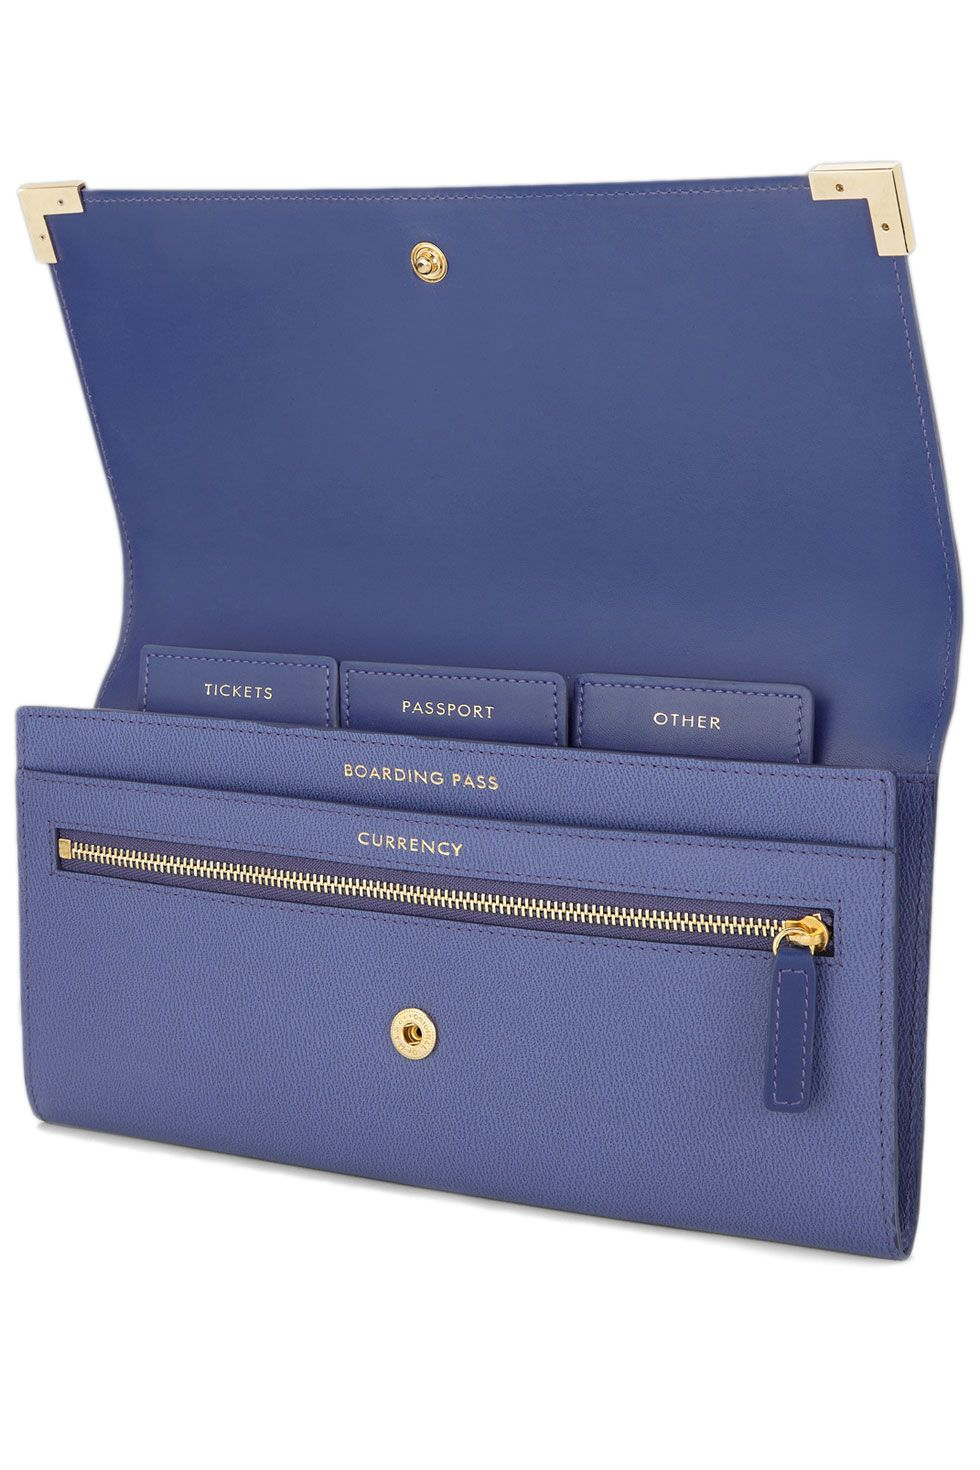 "<p>Regular sized passport holders never make sense—where are you supposed to tuck away that flimsy boarding pass? Instead, go for an oversized <span class=""highlight"">travel</span> wallet like this one by Smythson. It includes tabs that organize your tickets, documents, and dinero. </p><p><em>Smythson Grosvenor Corners Marshall <span class=""highlight"">Travel</span> Wallet, $405; </em><a href=""http://www.smythson.com/us/dawn-blue-grosvenor-corners-marshall-travel-wallet.html"" target=""_blank""><em>smythson.com</em></a></p>"